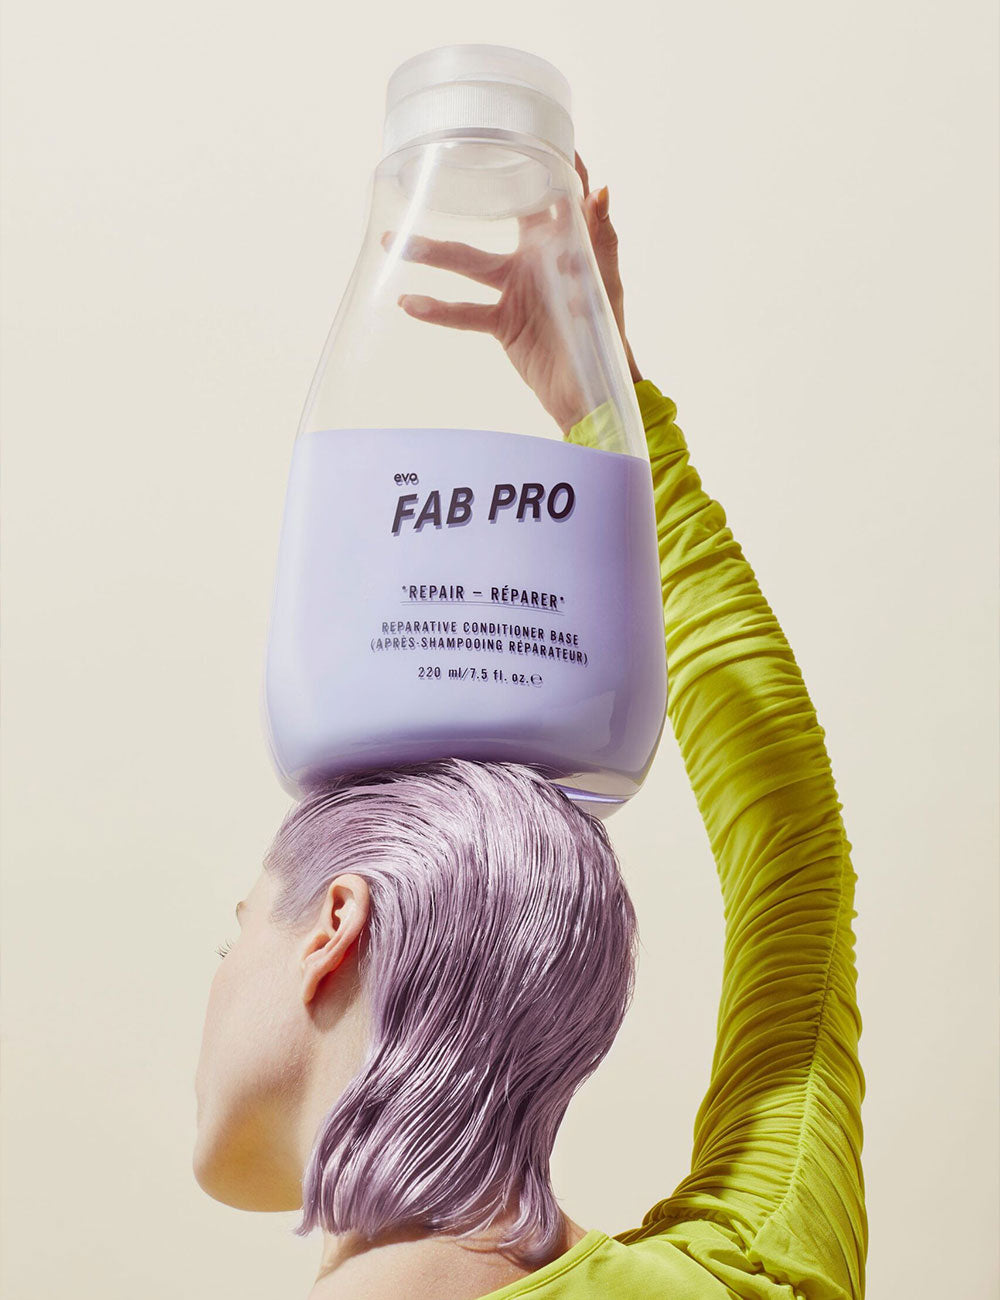 a woman with lovely purple hair holding a bottle on top of her head